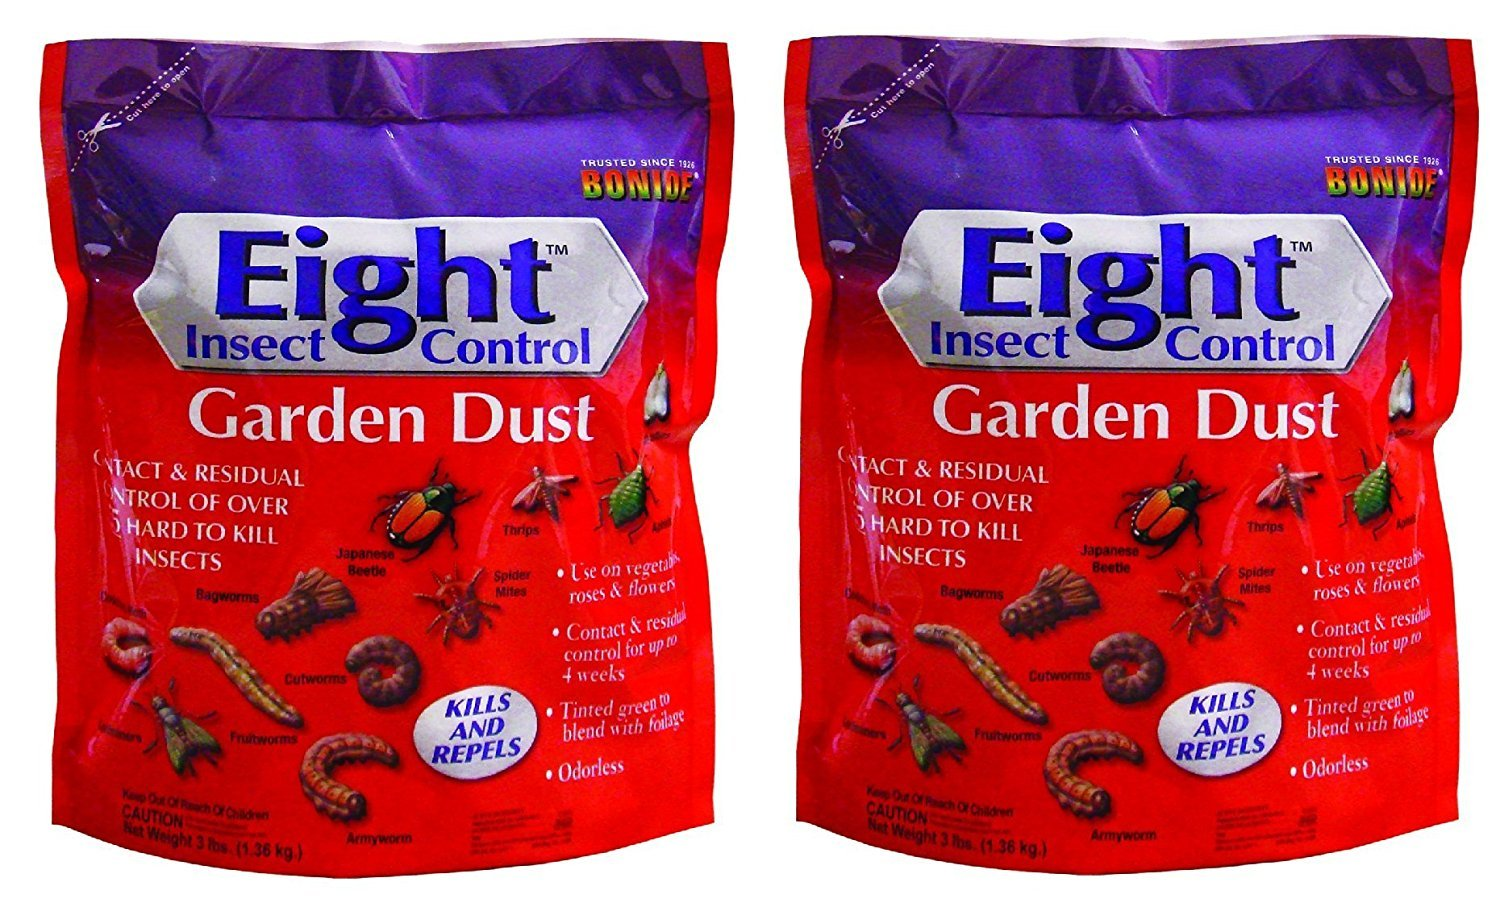 Bonide 78630 Eight Insect Control Garden Dust Pest Control, 3-Pounds, 2 Pack by Bonide